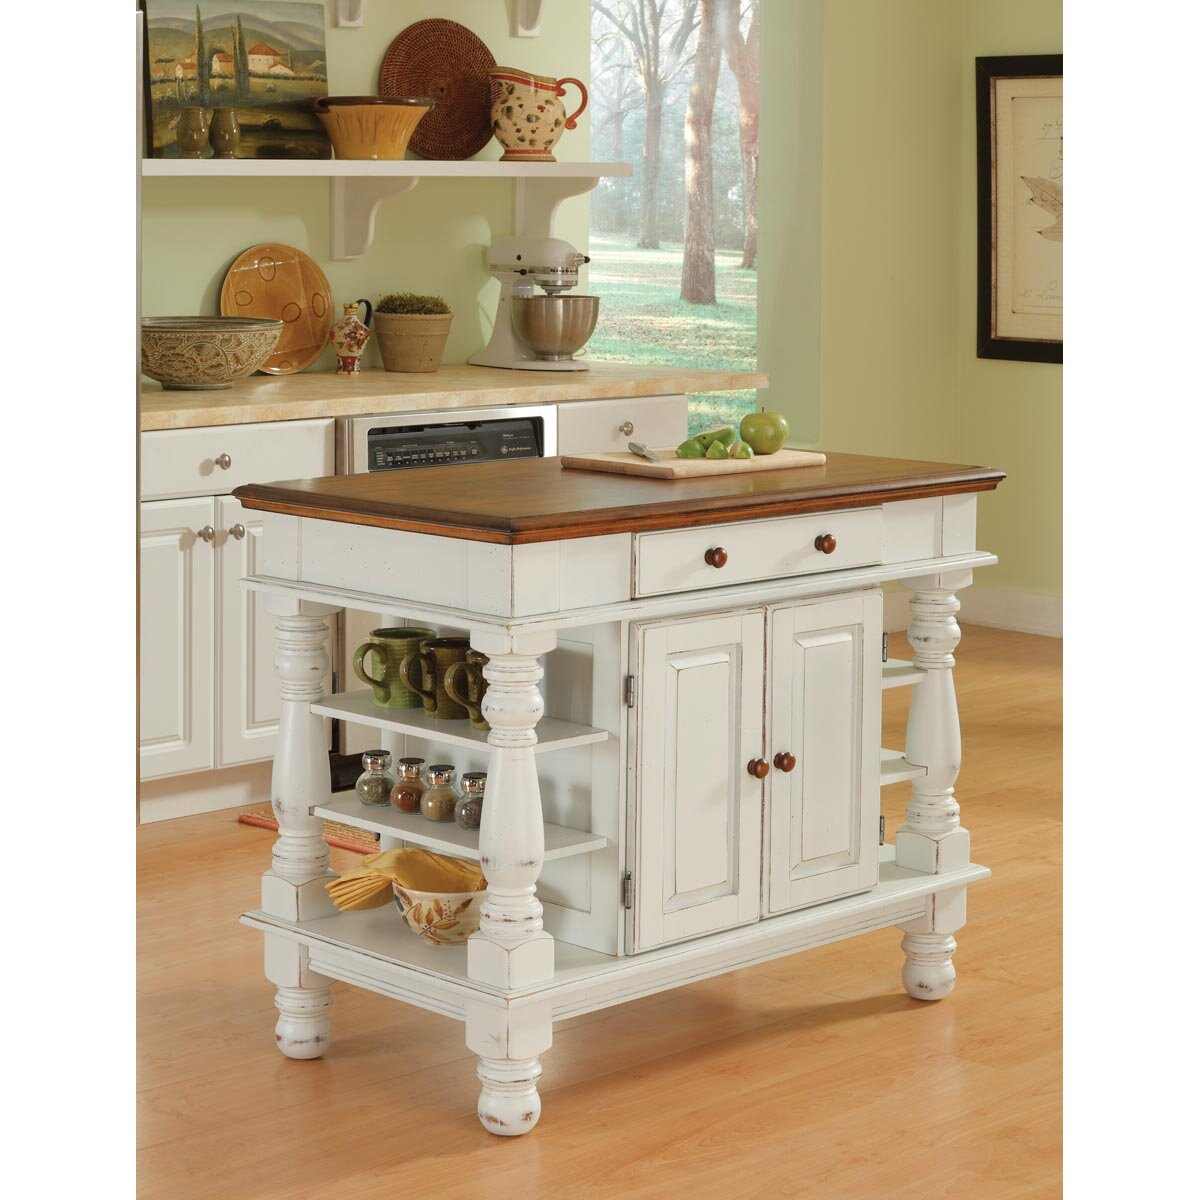 Furniture Kitchen Island August Grove Collette Kitchen Island Reviews Wayfair